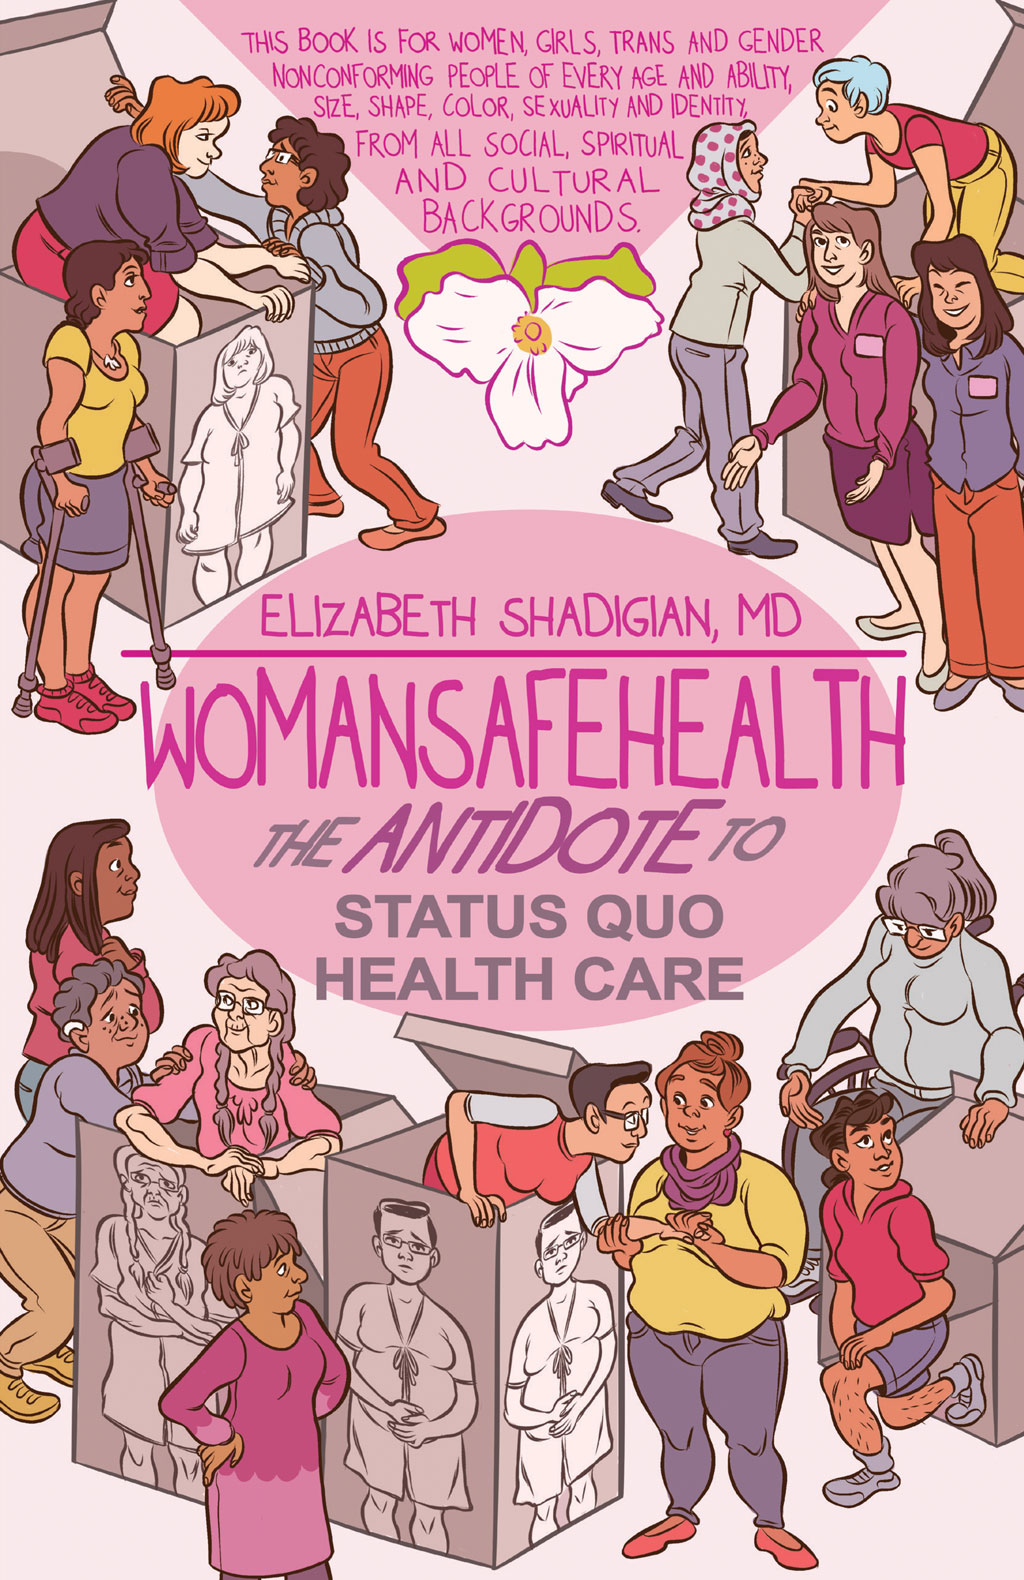 WomanSafeHealth Herstory presents WomanSafeHealth: The Antidote to Status Quo Health Care by Elizabeth Shadigian, MD